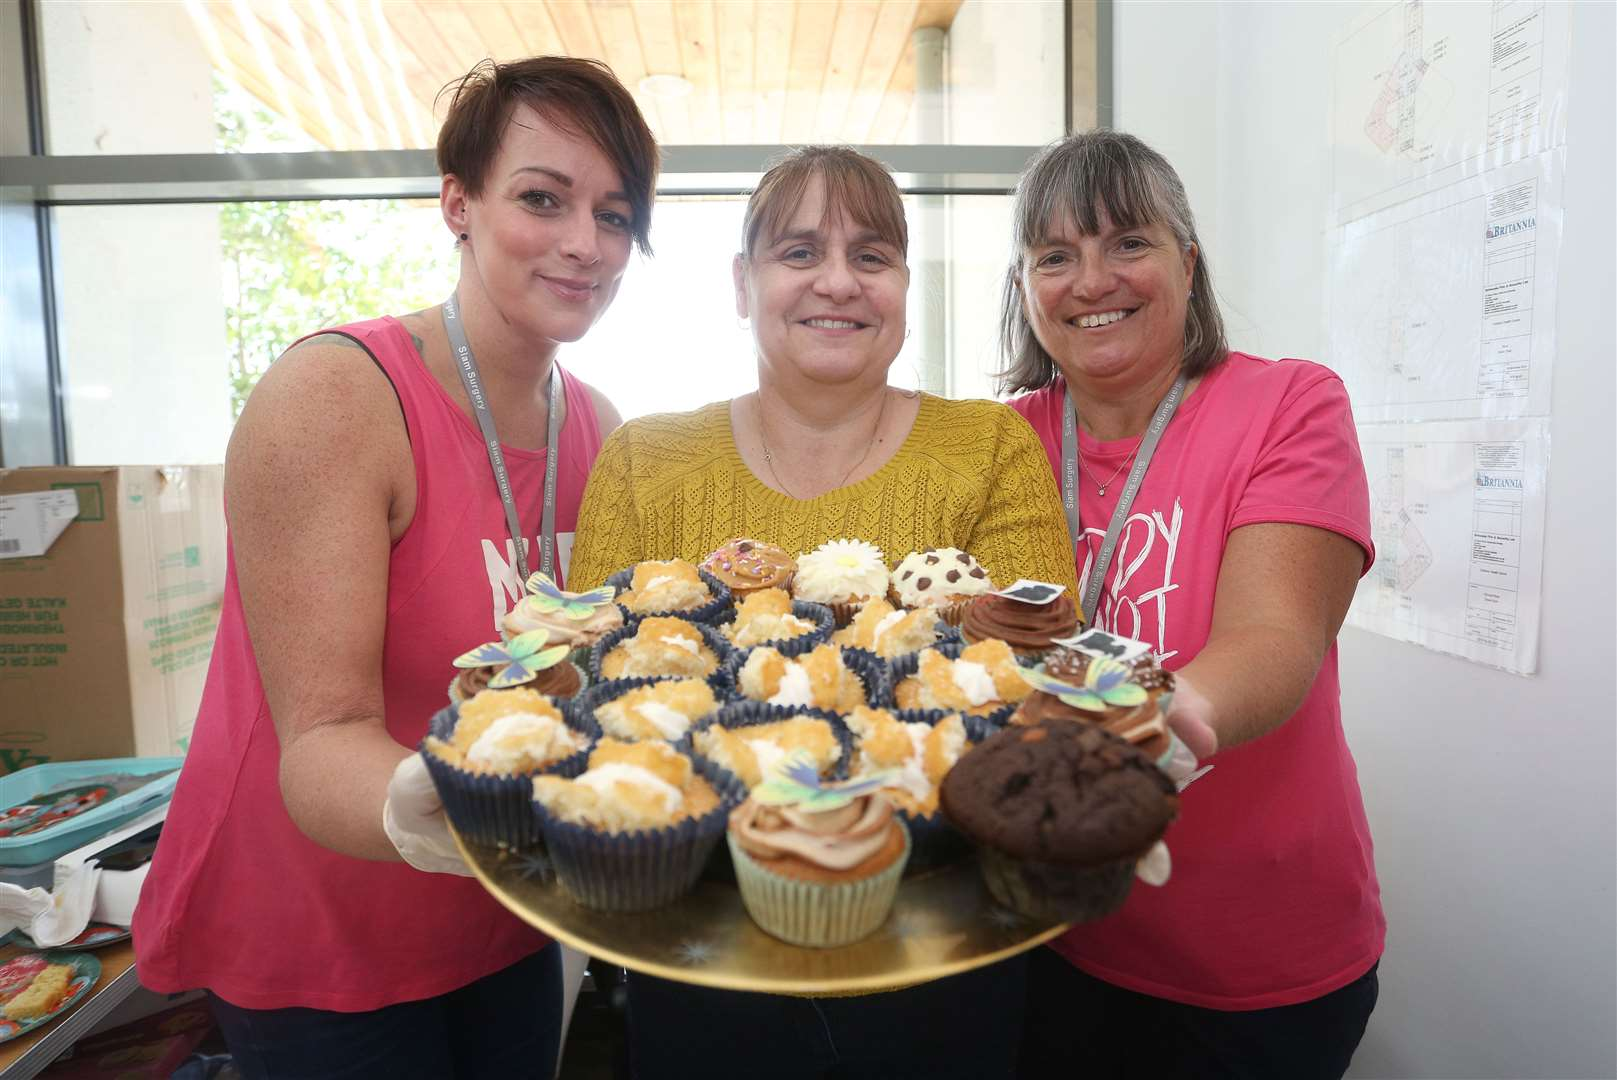 McMillan Coffee morning and walk in clinic event at Sudbury Community Health Centre - (L-R)Amy Bates, Sue Lowe and Di Cunningham sell some cakes at the event..Pic - Richard Marsham. (17919190)